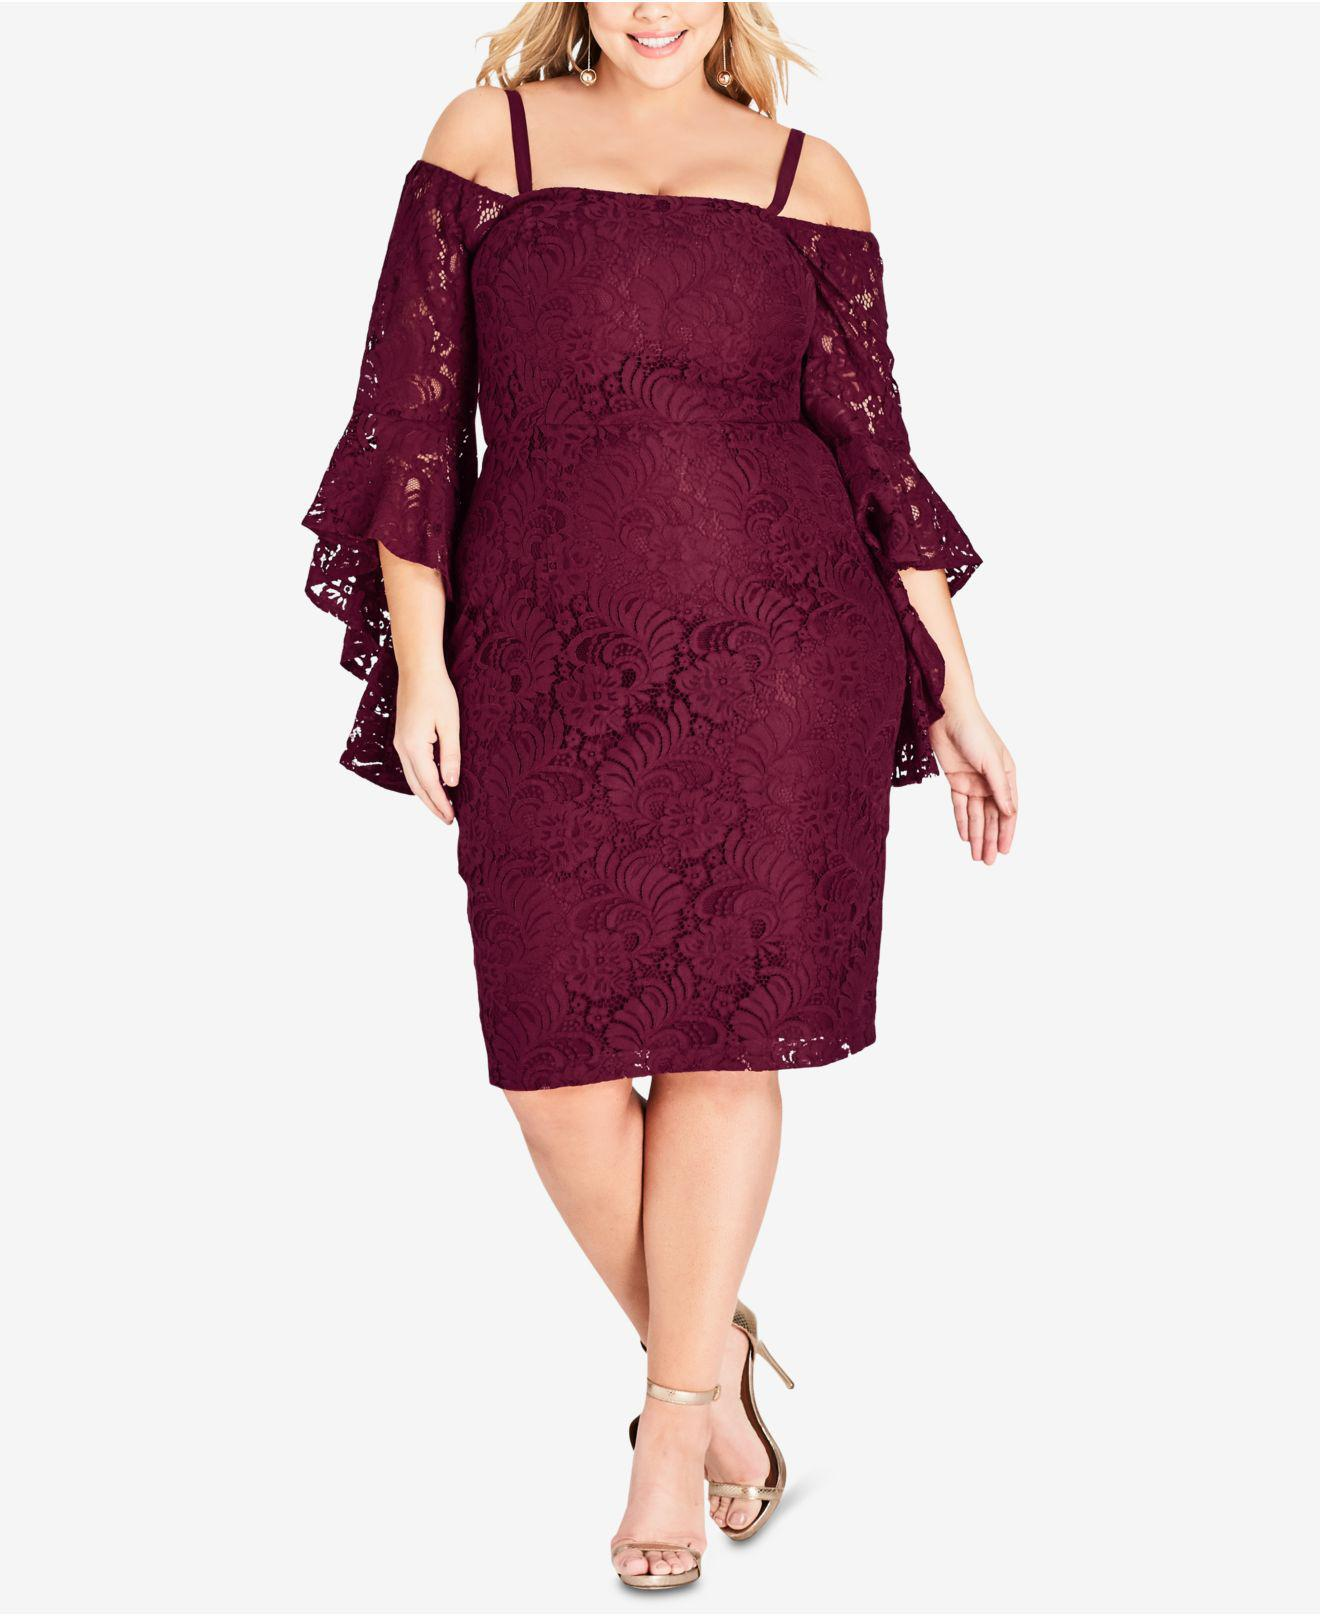 5de752f214b Lyst - City Chic Trendy Plus Size Off-the-shoulder Lace Dress in Red